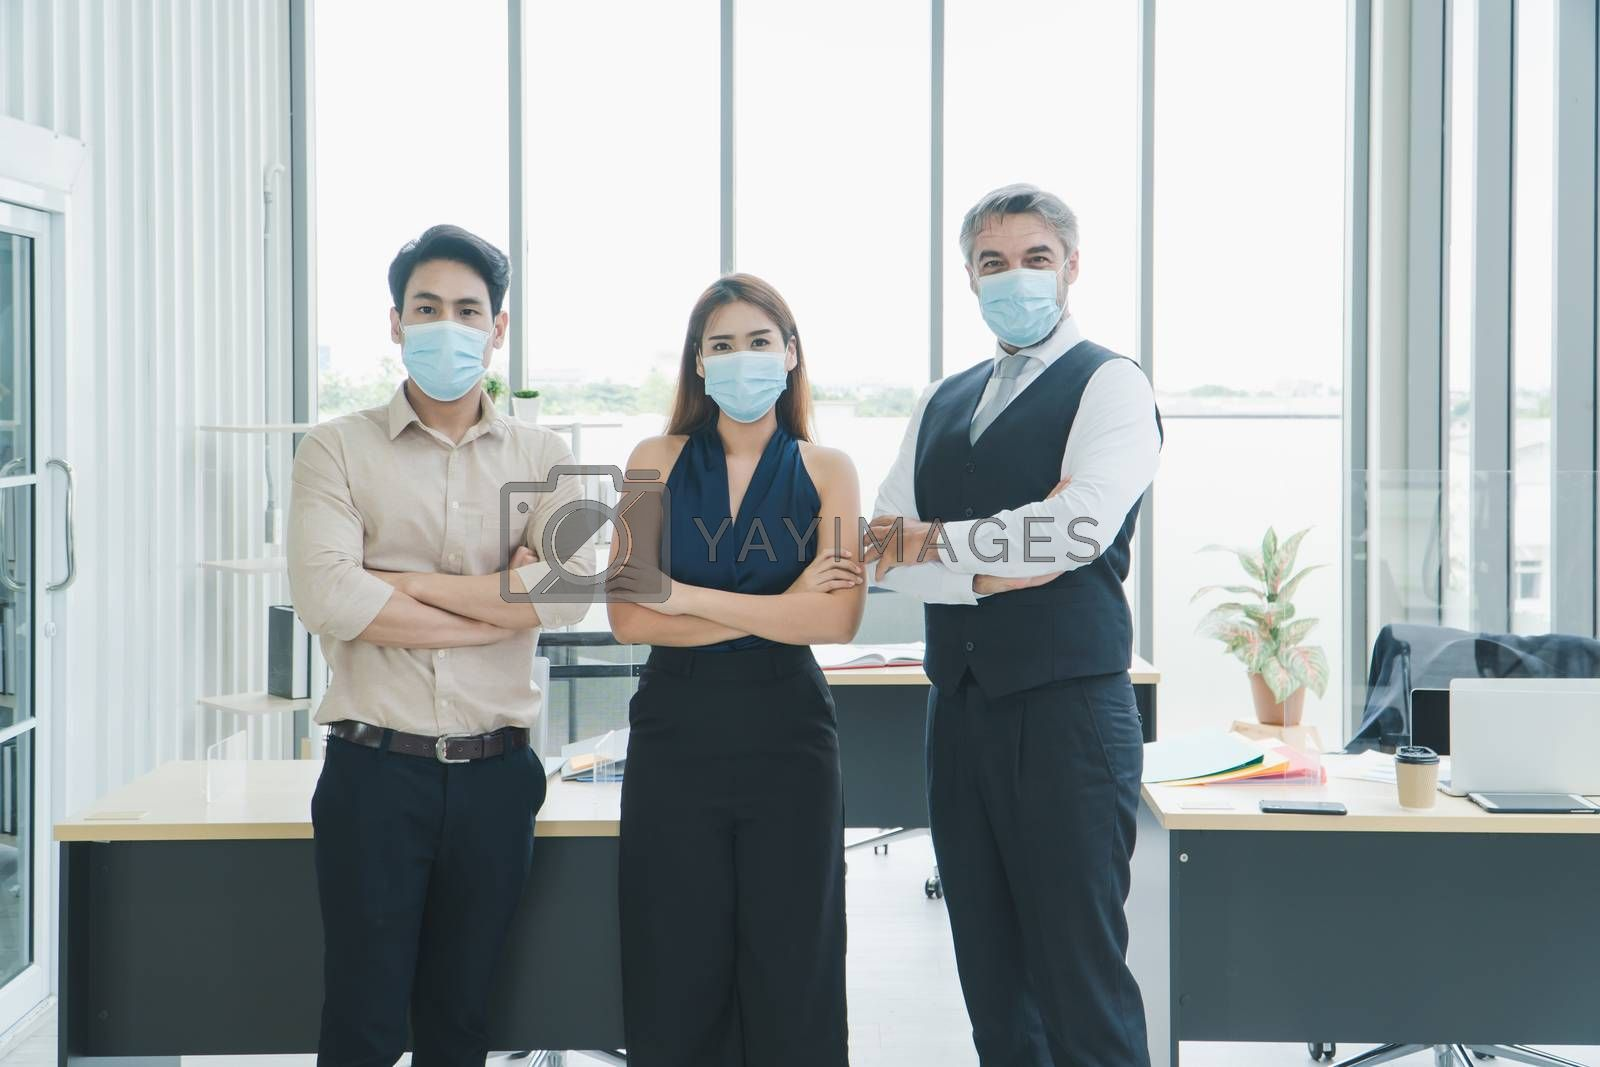 portrait Multi-ethnic male and female business group Everyone is wearing a medical mask. Smile and look at the camera. social distancing is the new normal. Background for laptops and office desks